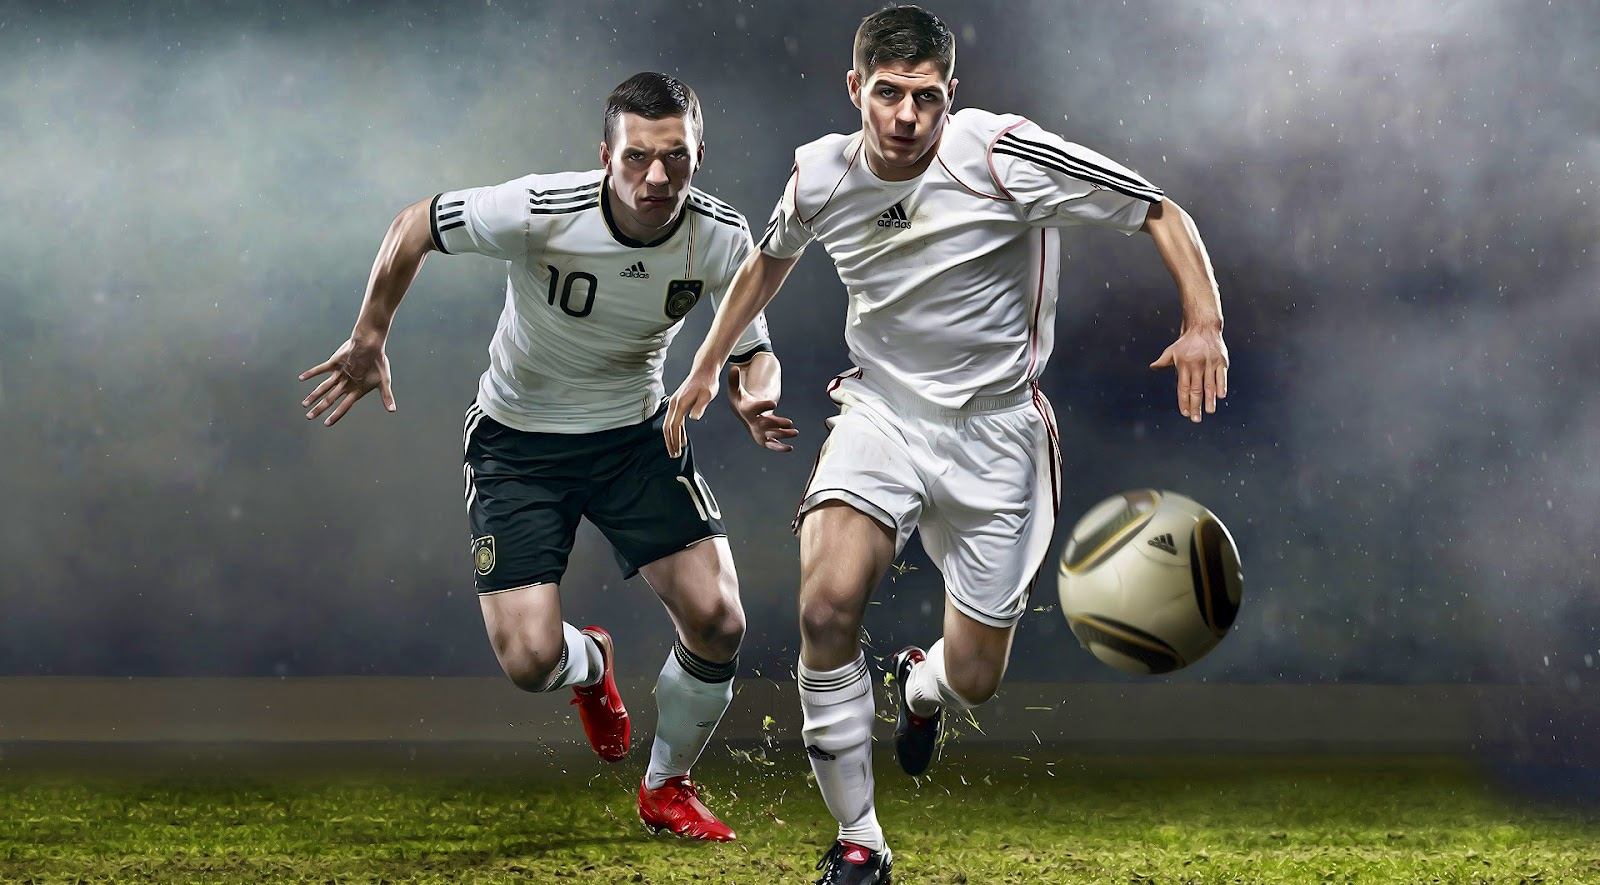 Soccer Football Wallpapers two soccer players soccerball Beautiful 1600x885